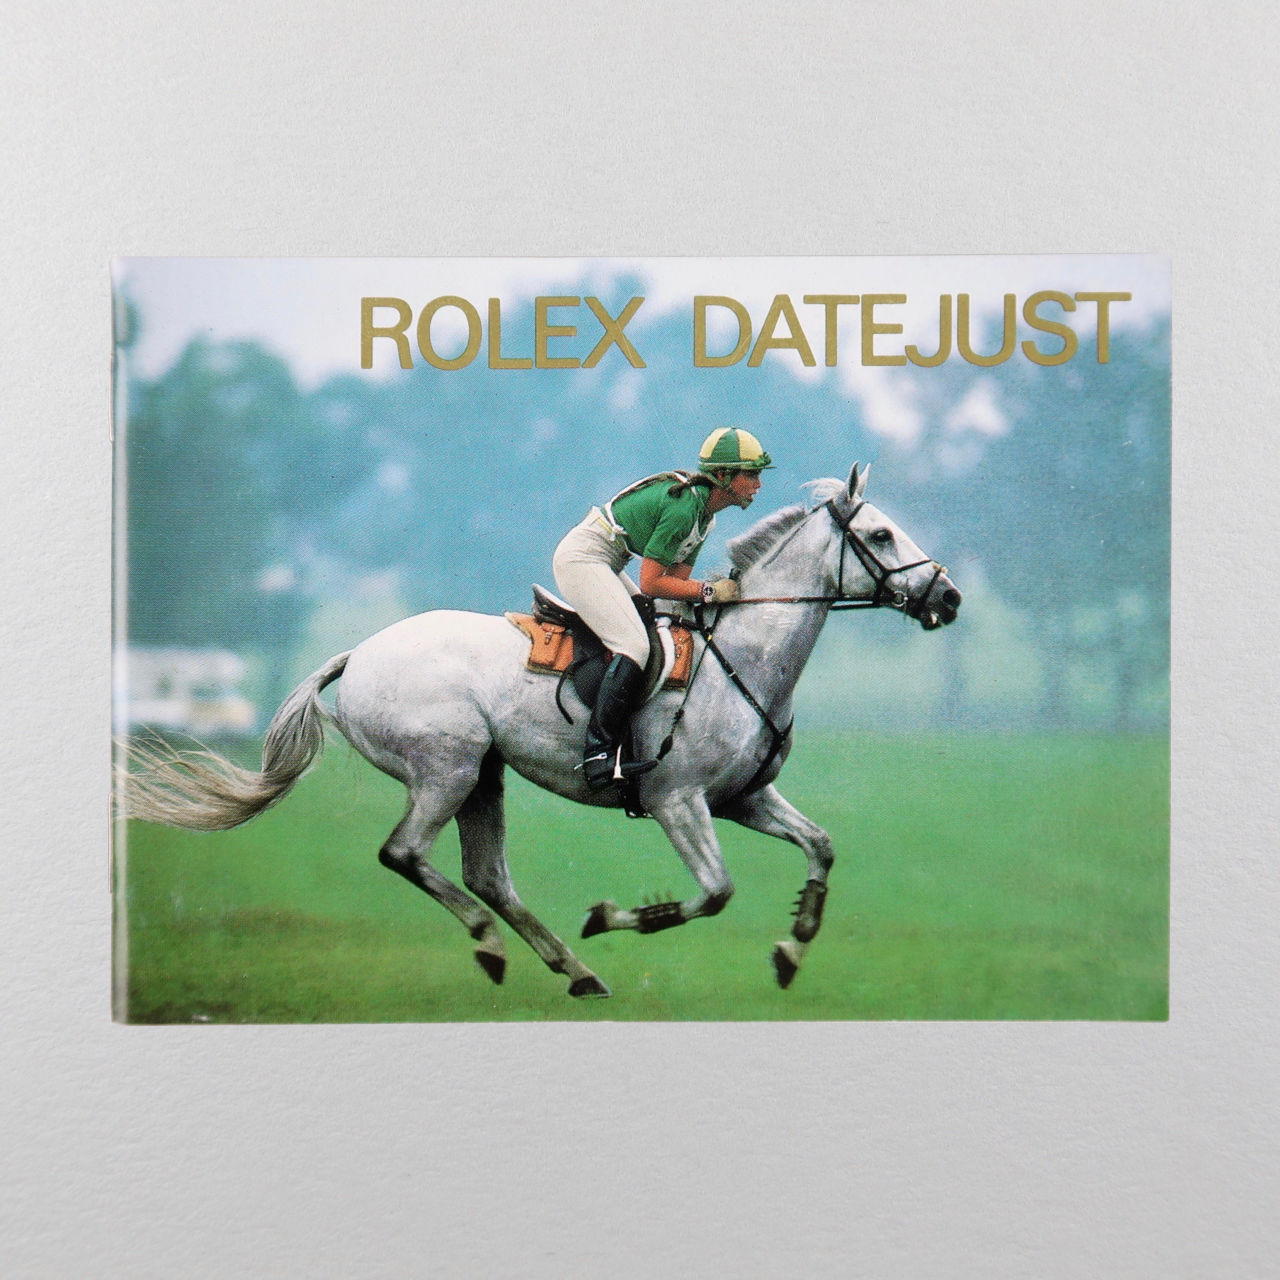 Rolex Datejust Booklets